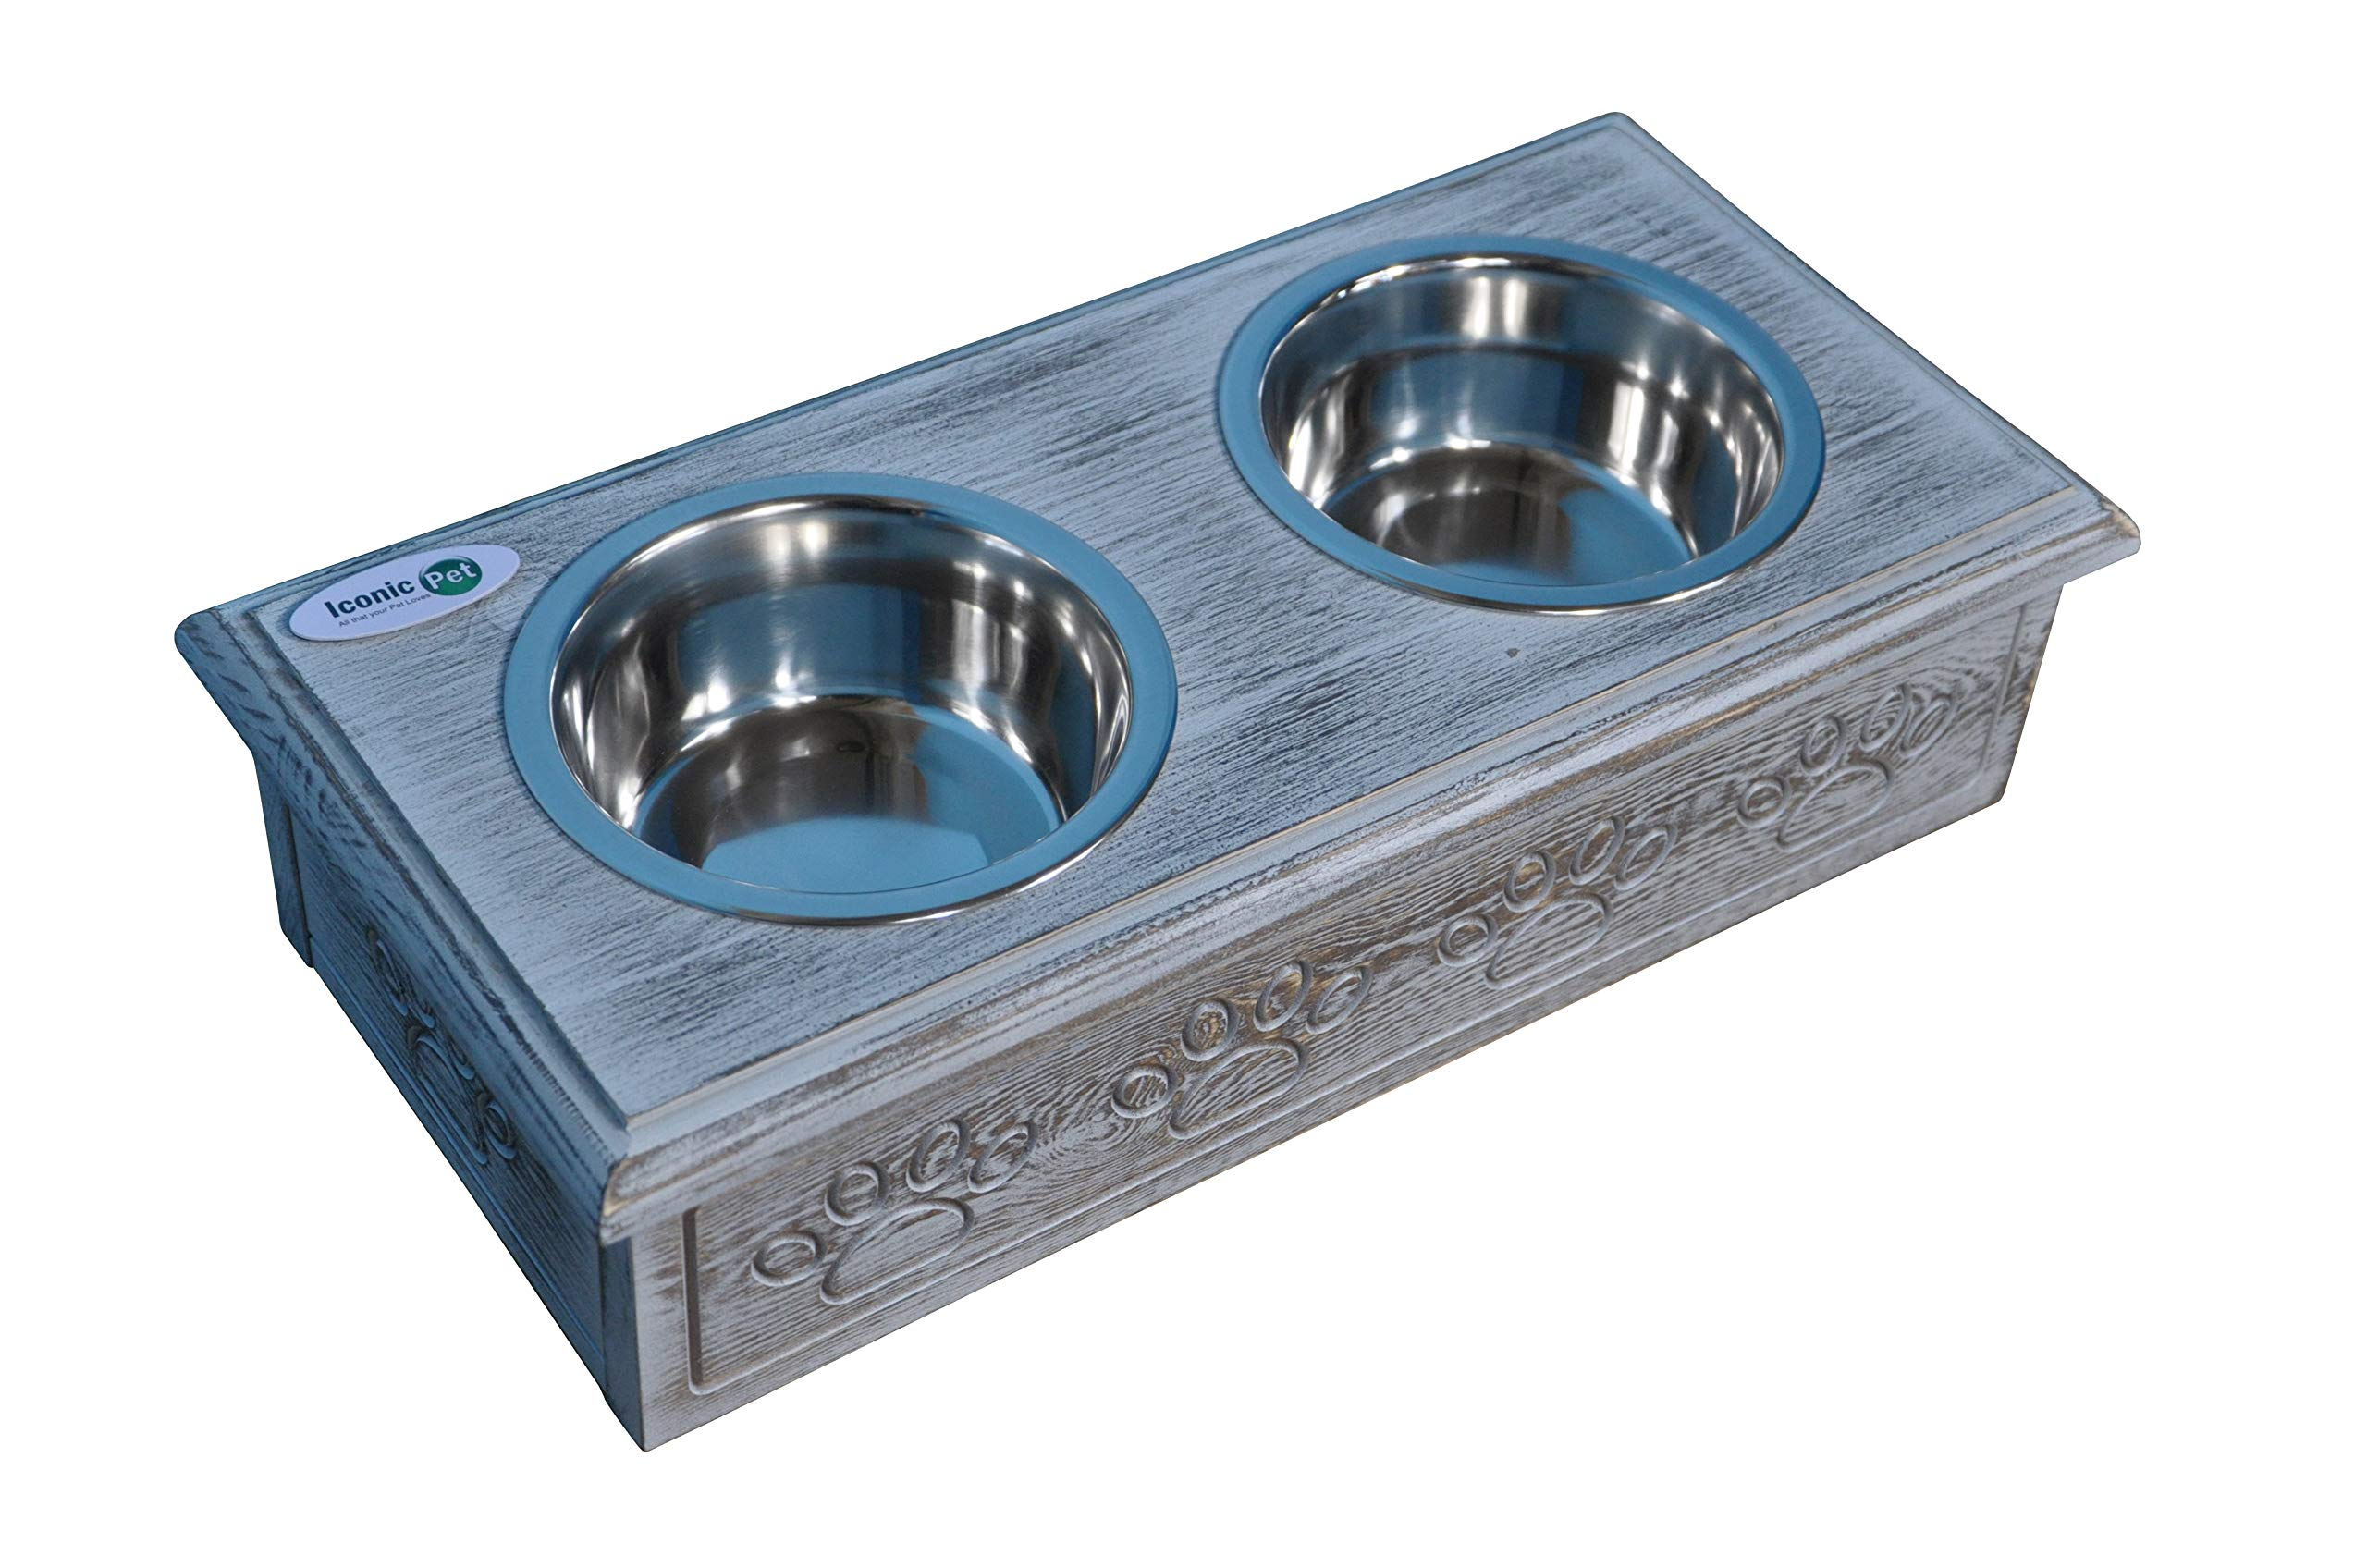 Iconic Pet Sassy Paws Wooden Pet Double Diner with Stainless Steel Food & Water Bowls for Dogs & Cats by Iconic Pet